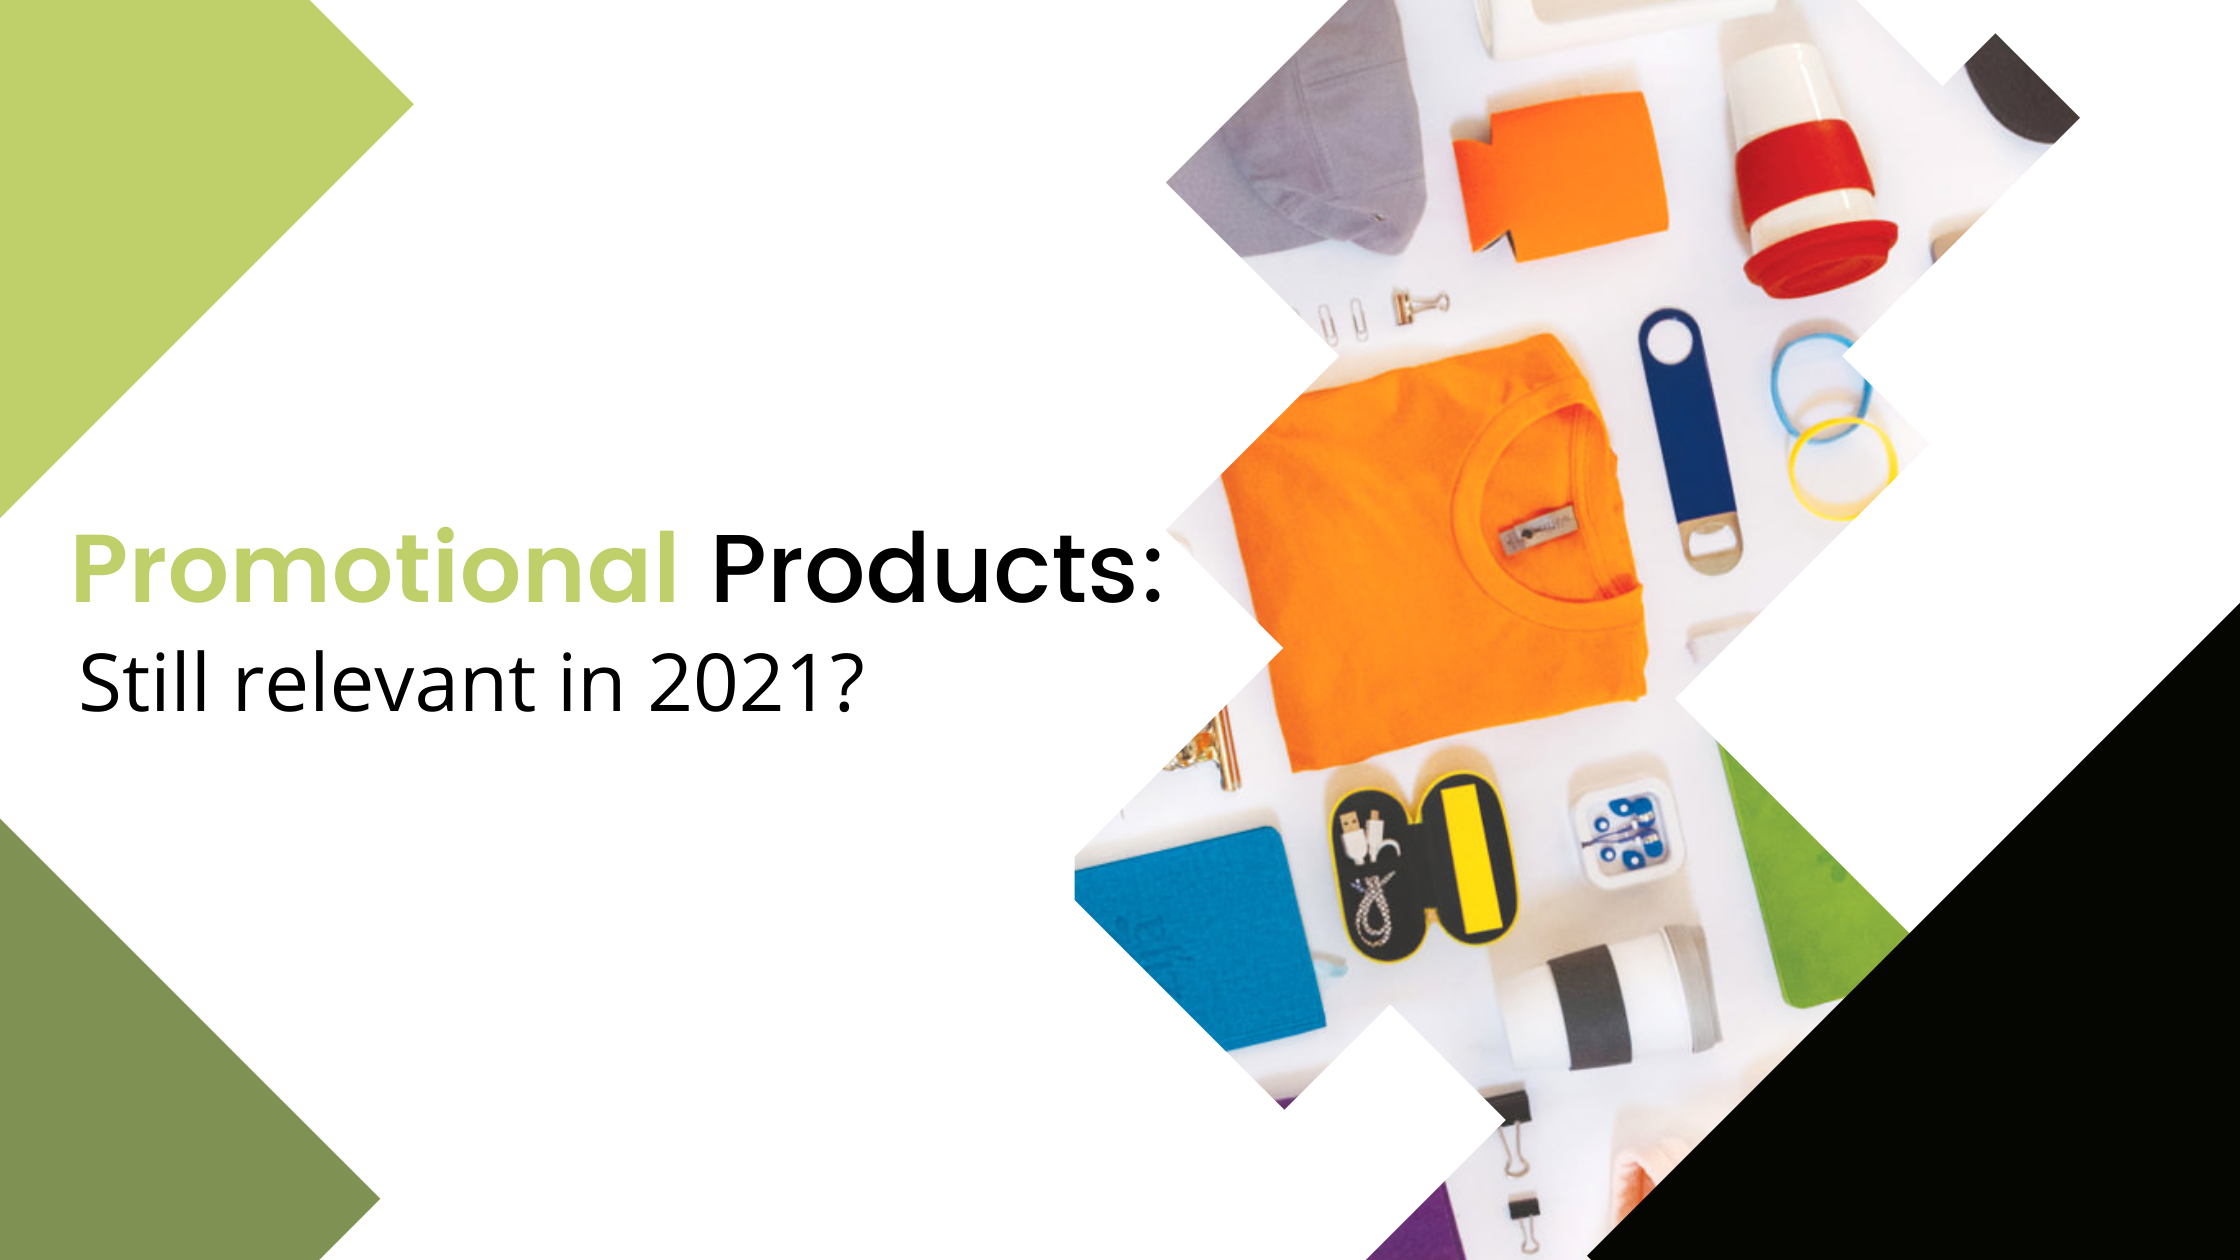 Branded Products, Corporate Gifts: Do They Still Have An Impact in 2021?